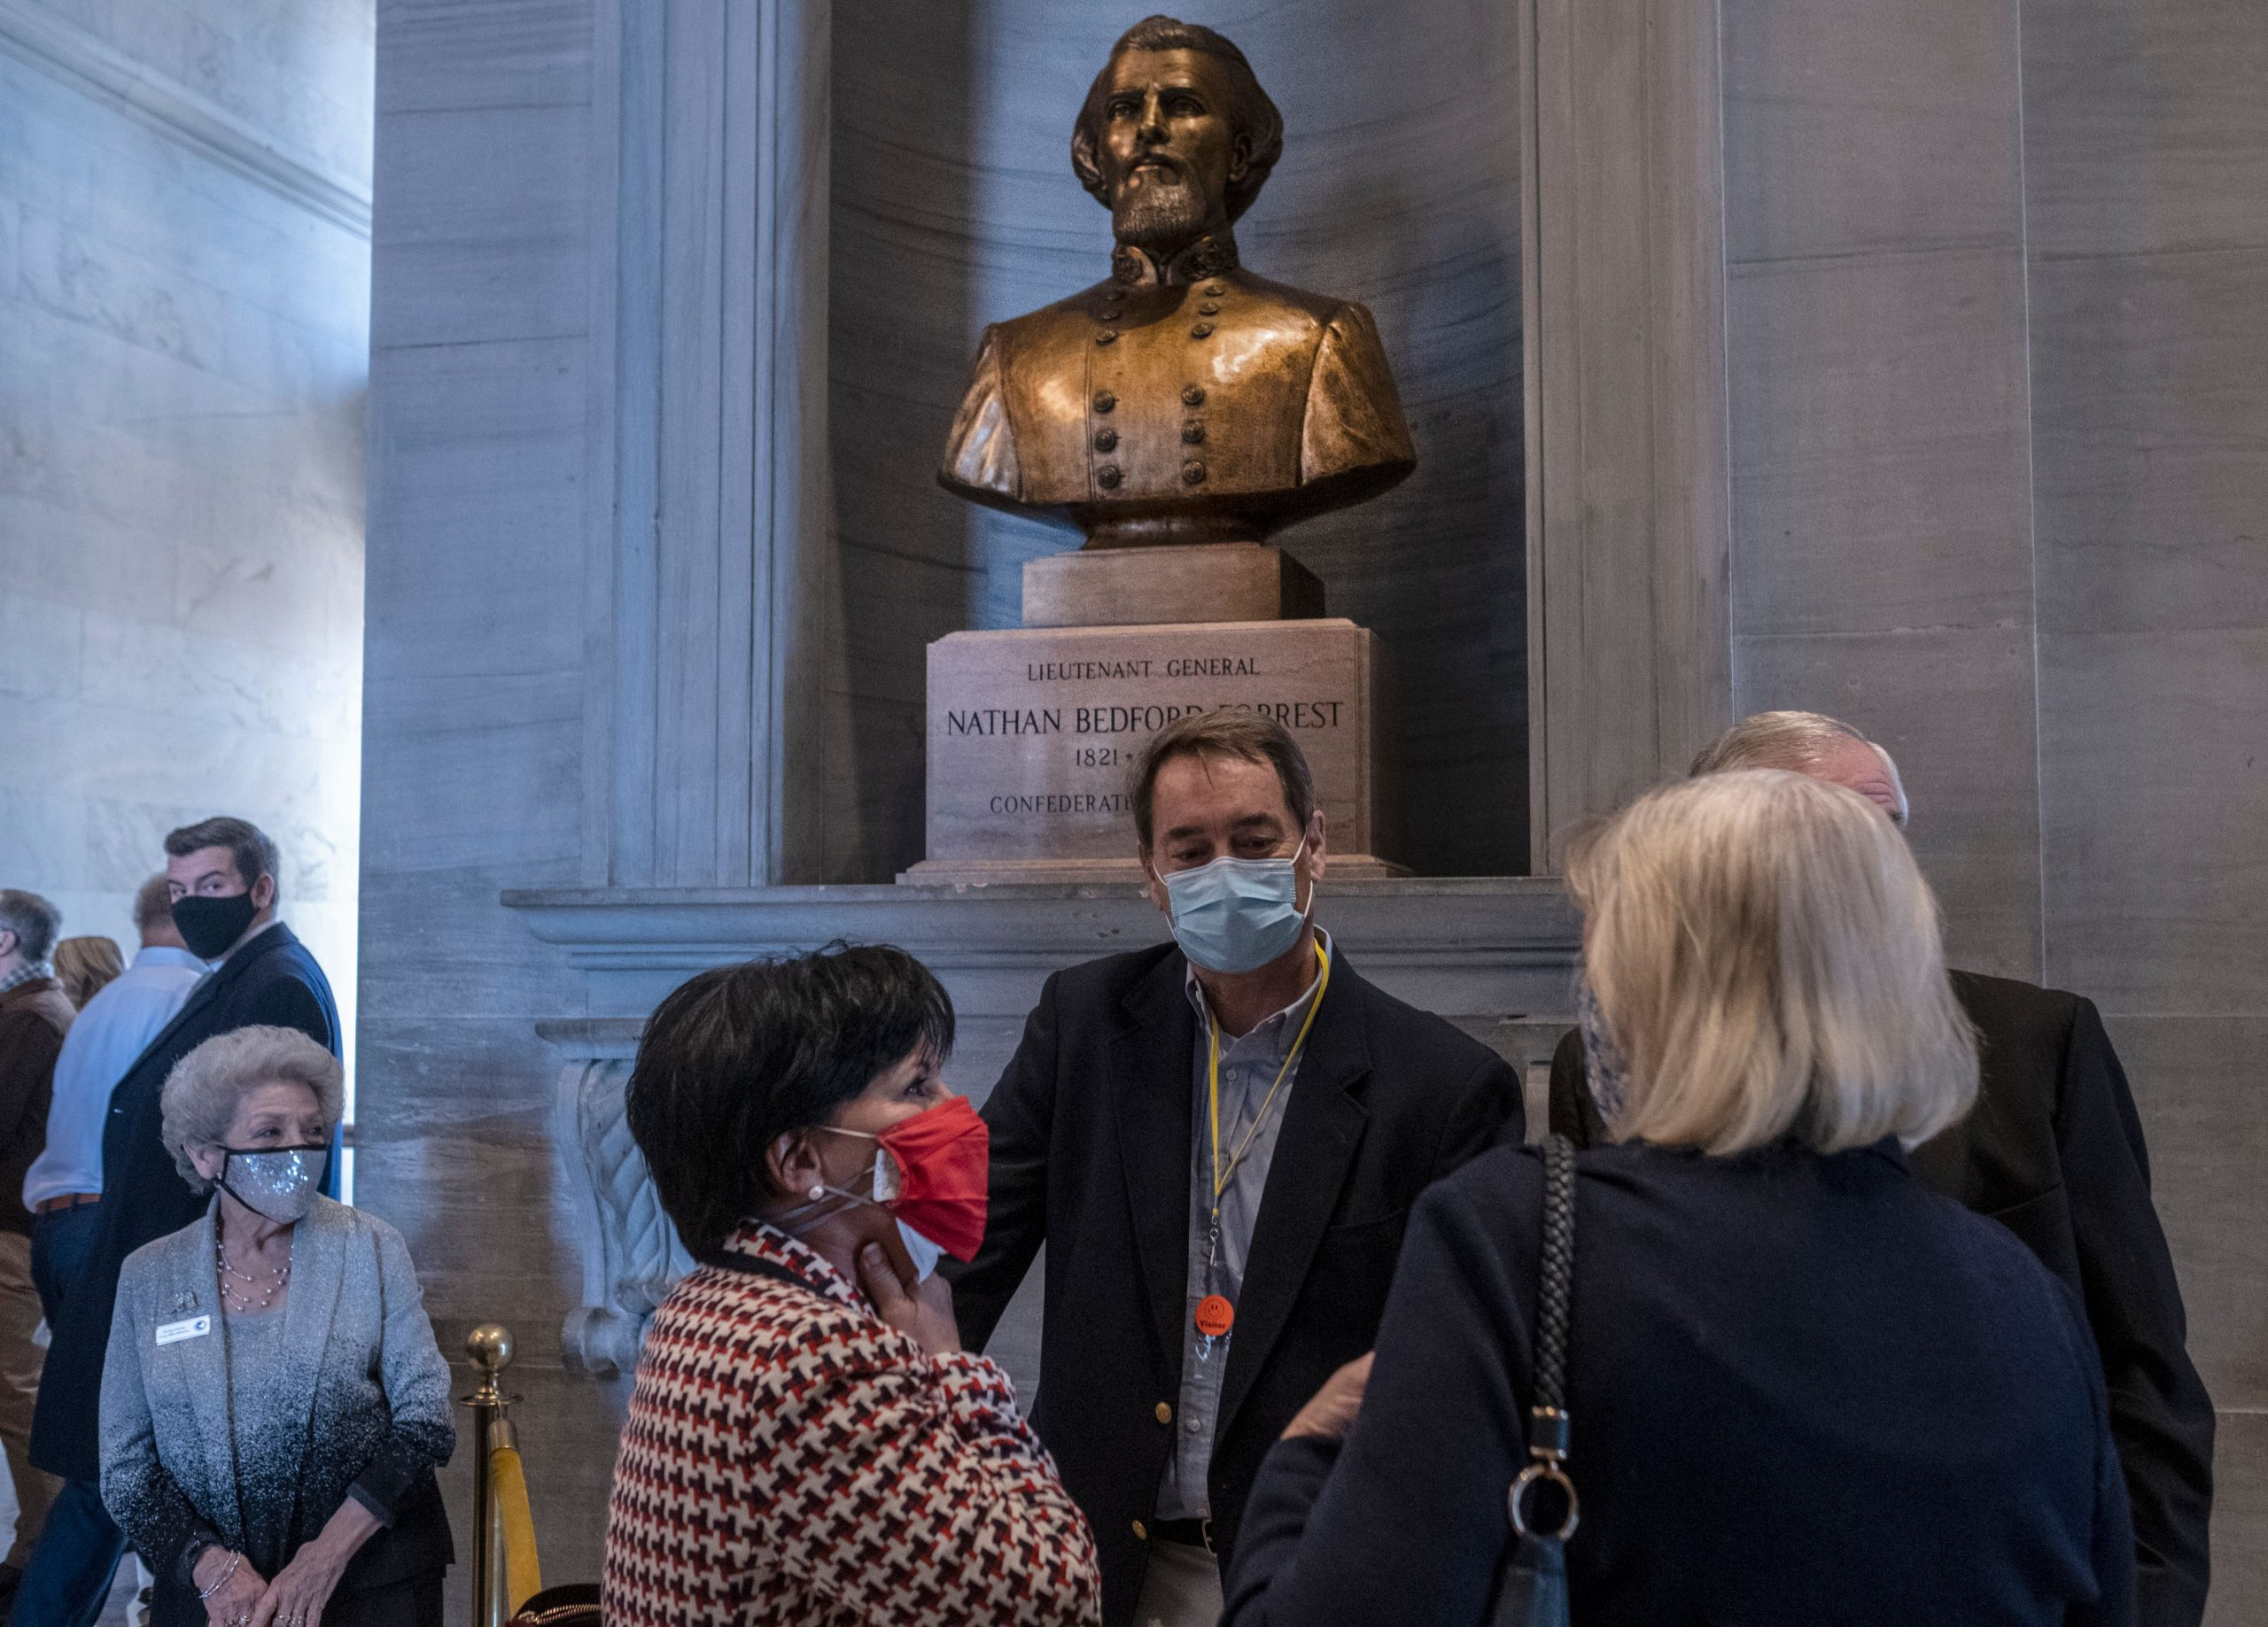 The controversial bust of Nathan Bedford Forrest perches in the Tennessee Capitol's second floor, between the chambers of the House of Representatives and Senate. (Photo: John Partipilo)